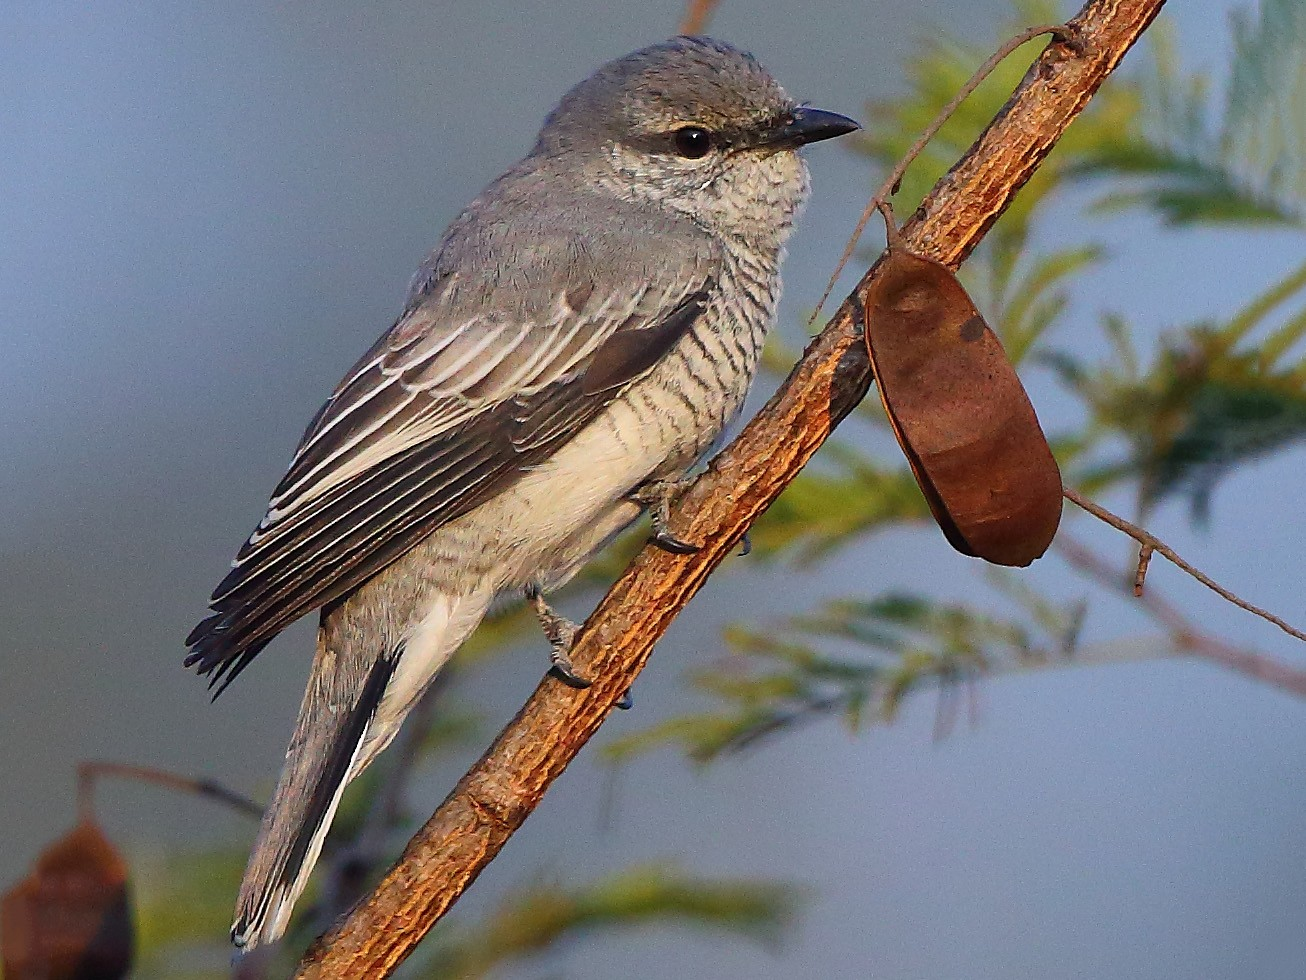 Black-headed Cuckooshrike - Albin Jacob